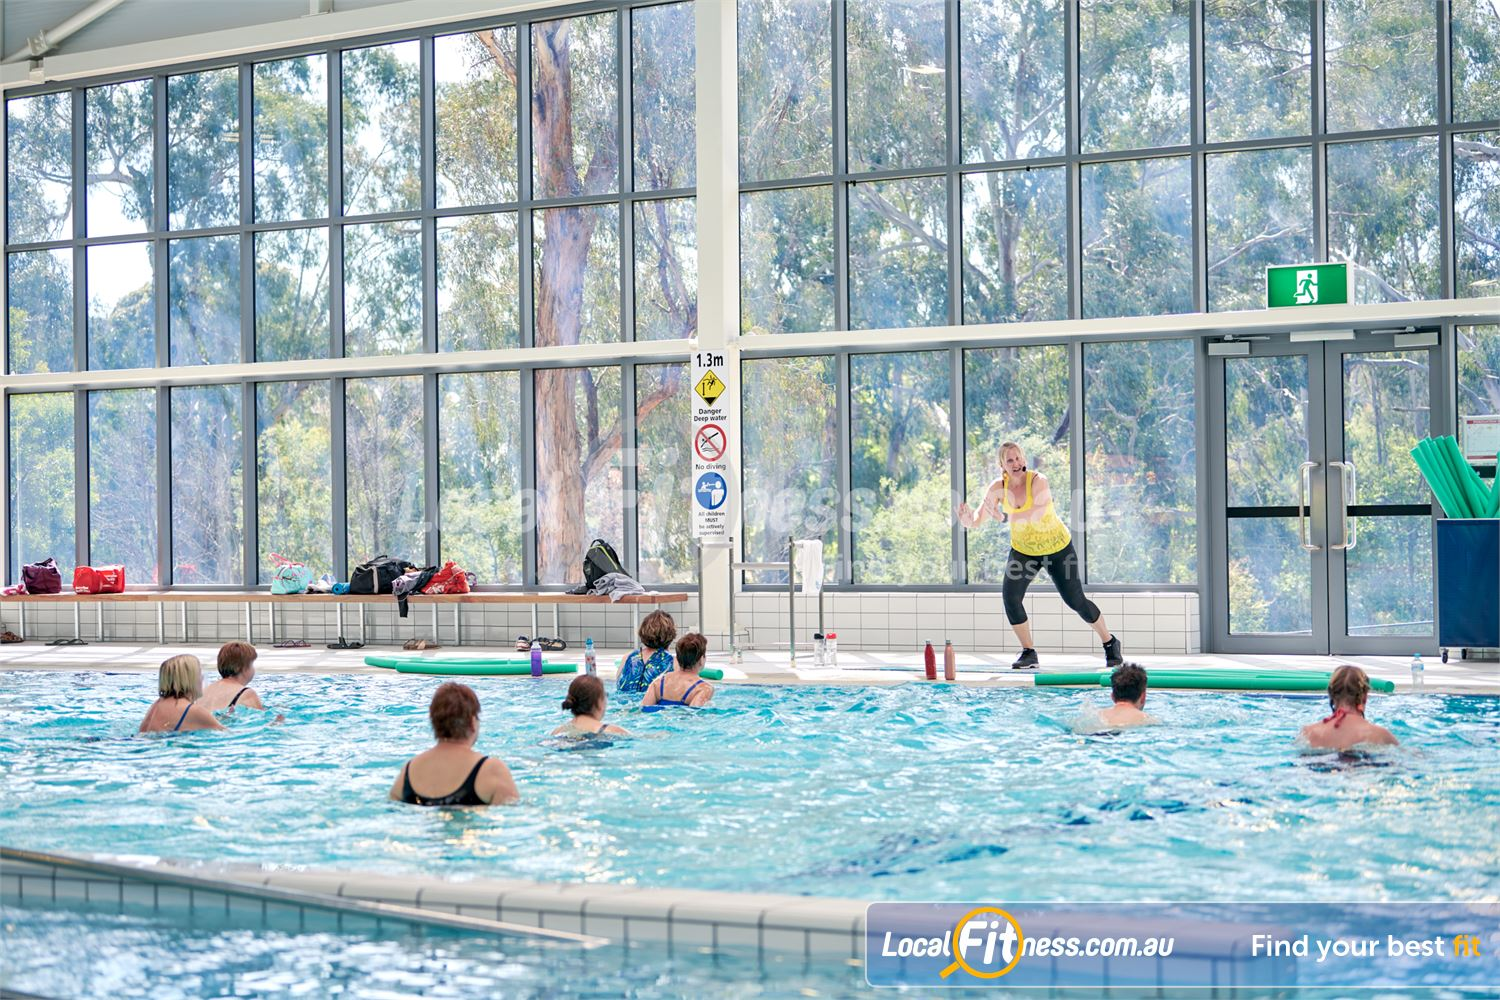 Eltham Leisure Centre Near Templestowe Try our range of aqua classes inc. Aqua Zumba.